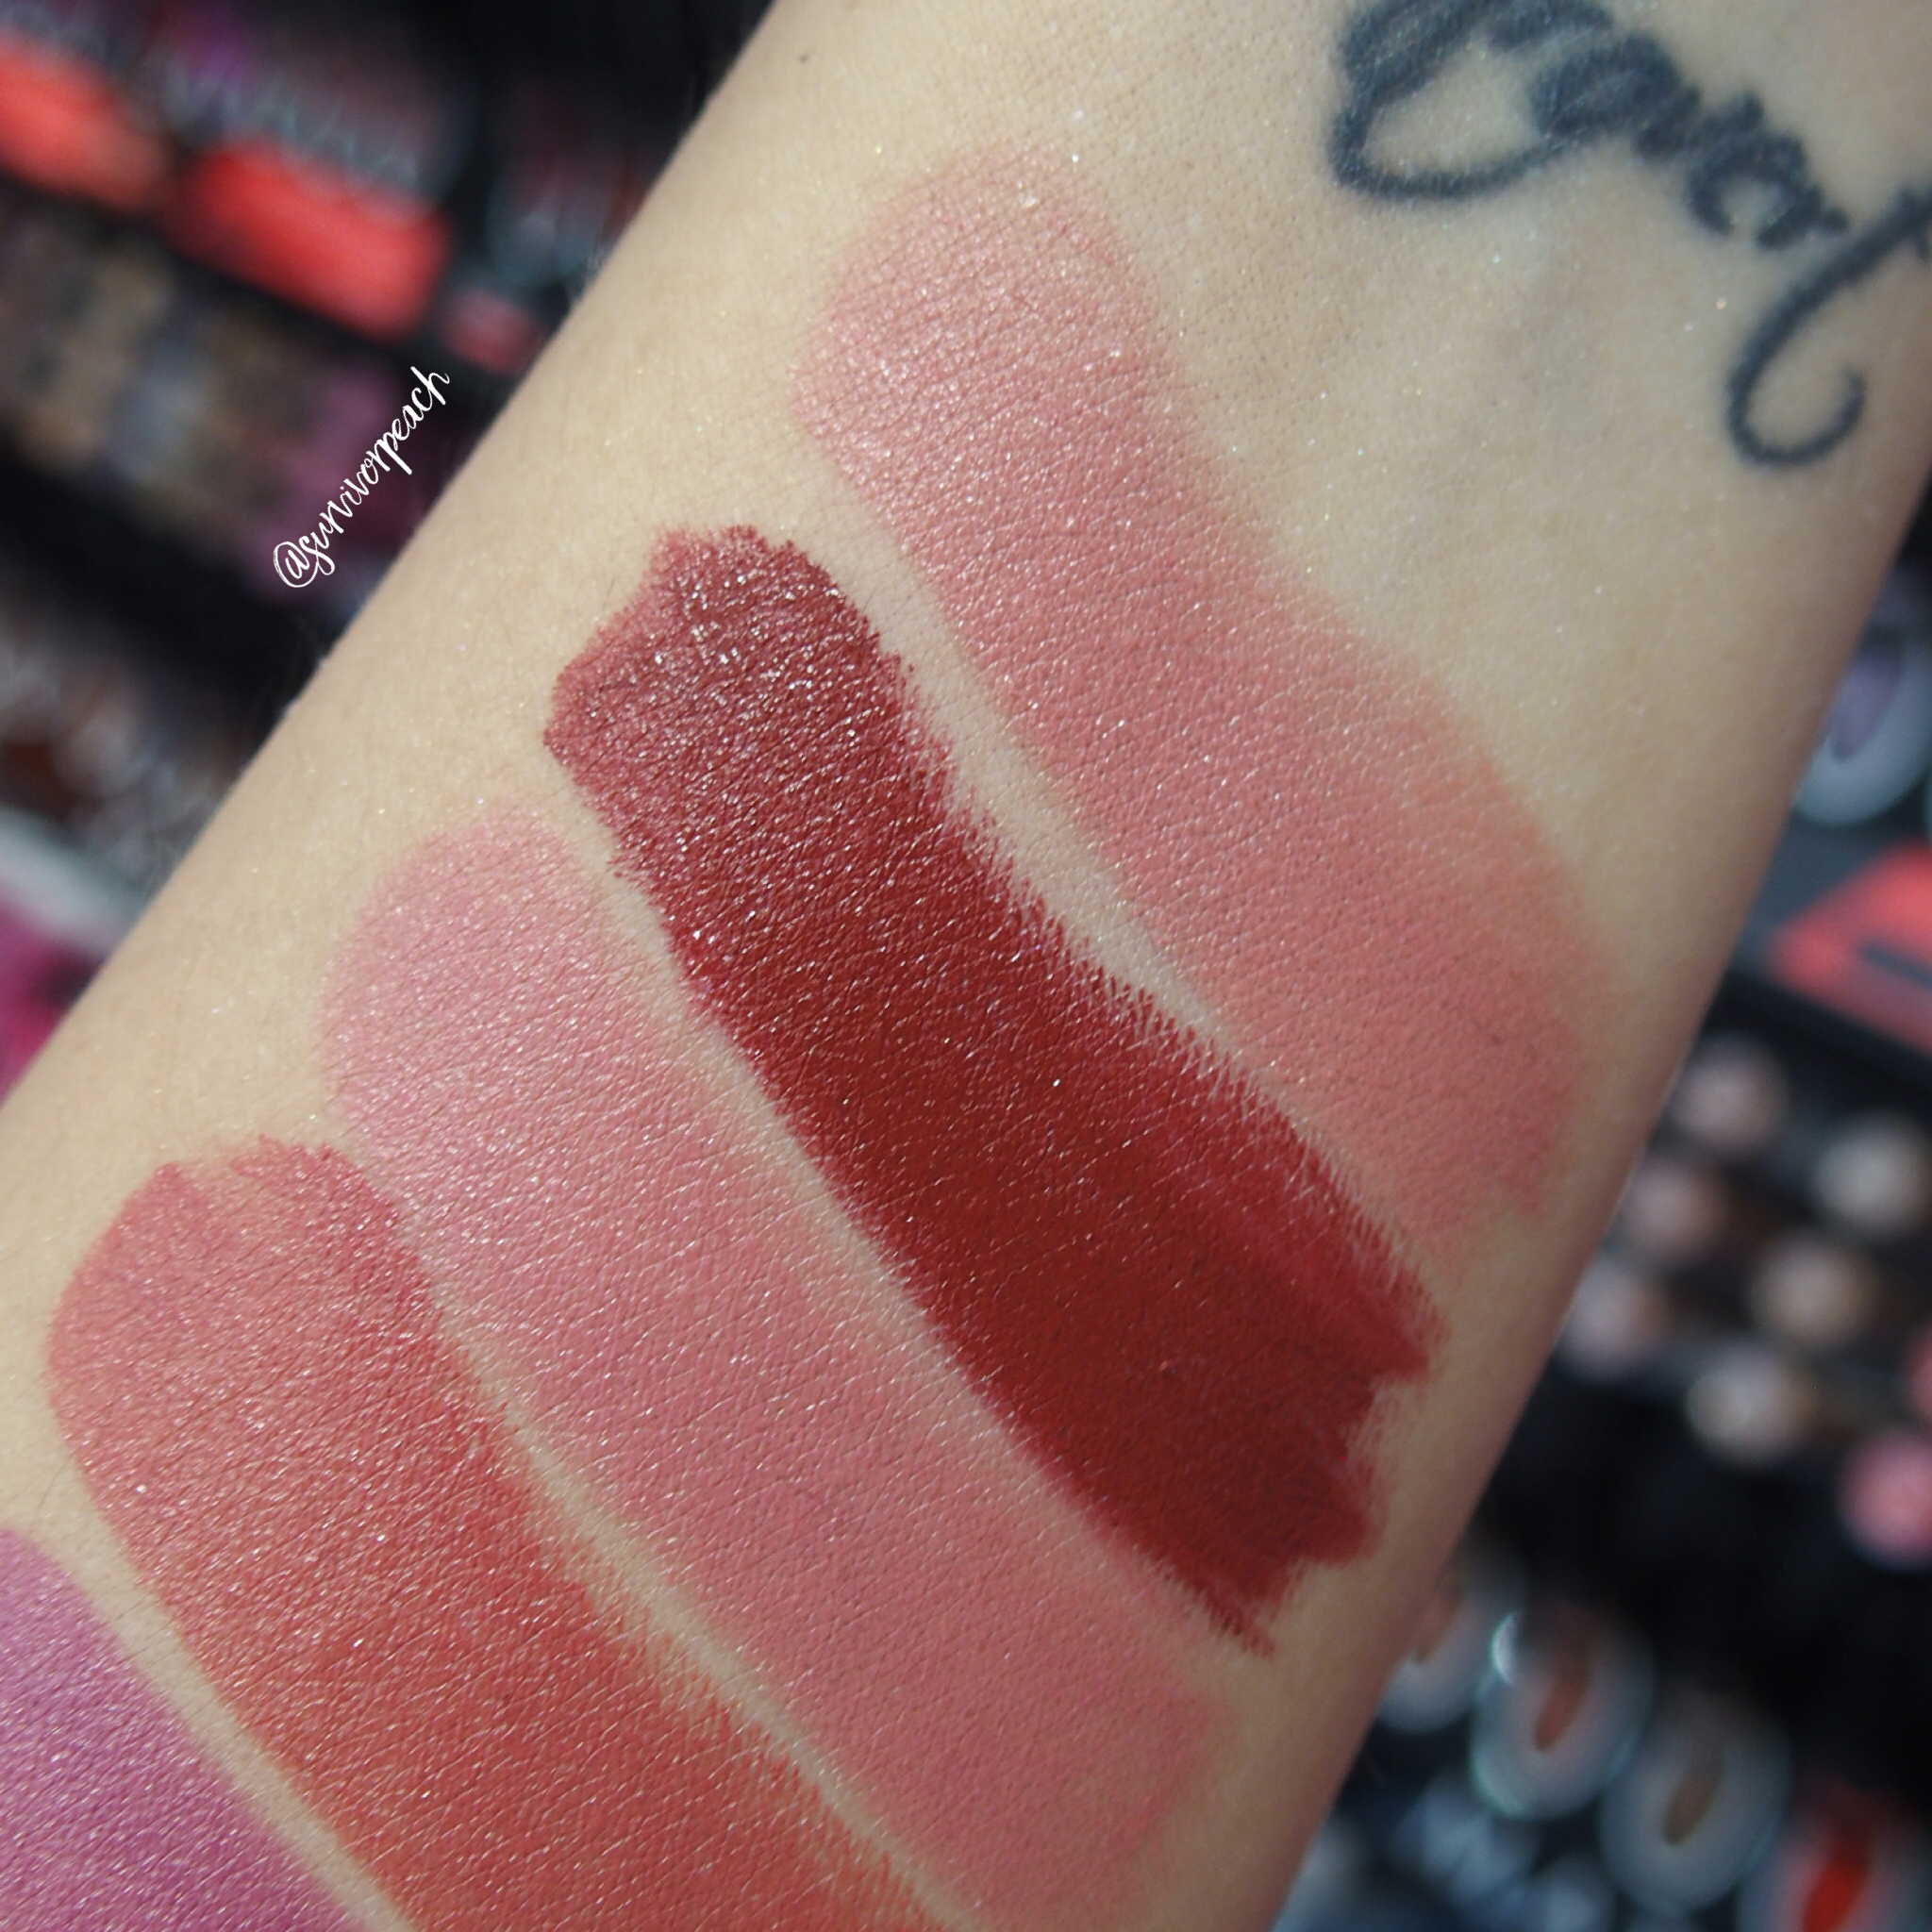 Sephora Collection Rouge Satin Lipstick swatches -S01 Let Me Dream, S02 Courtisane, S04 No Make Up, S05 Sunjkissed